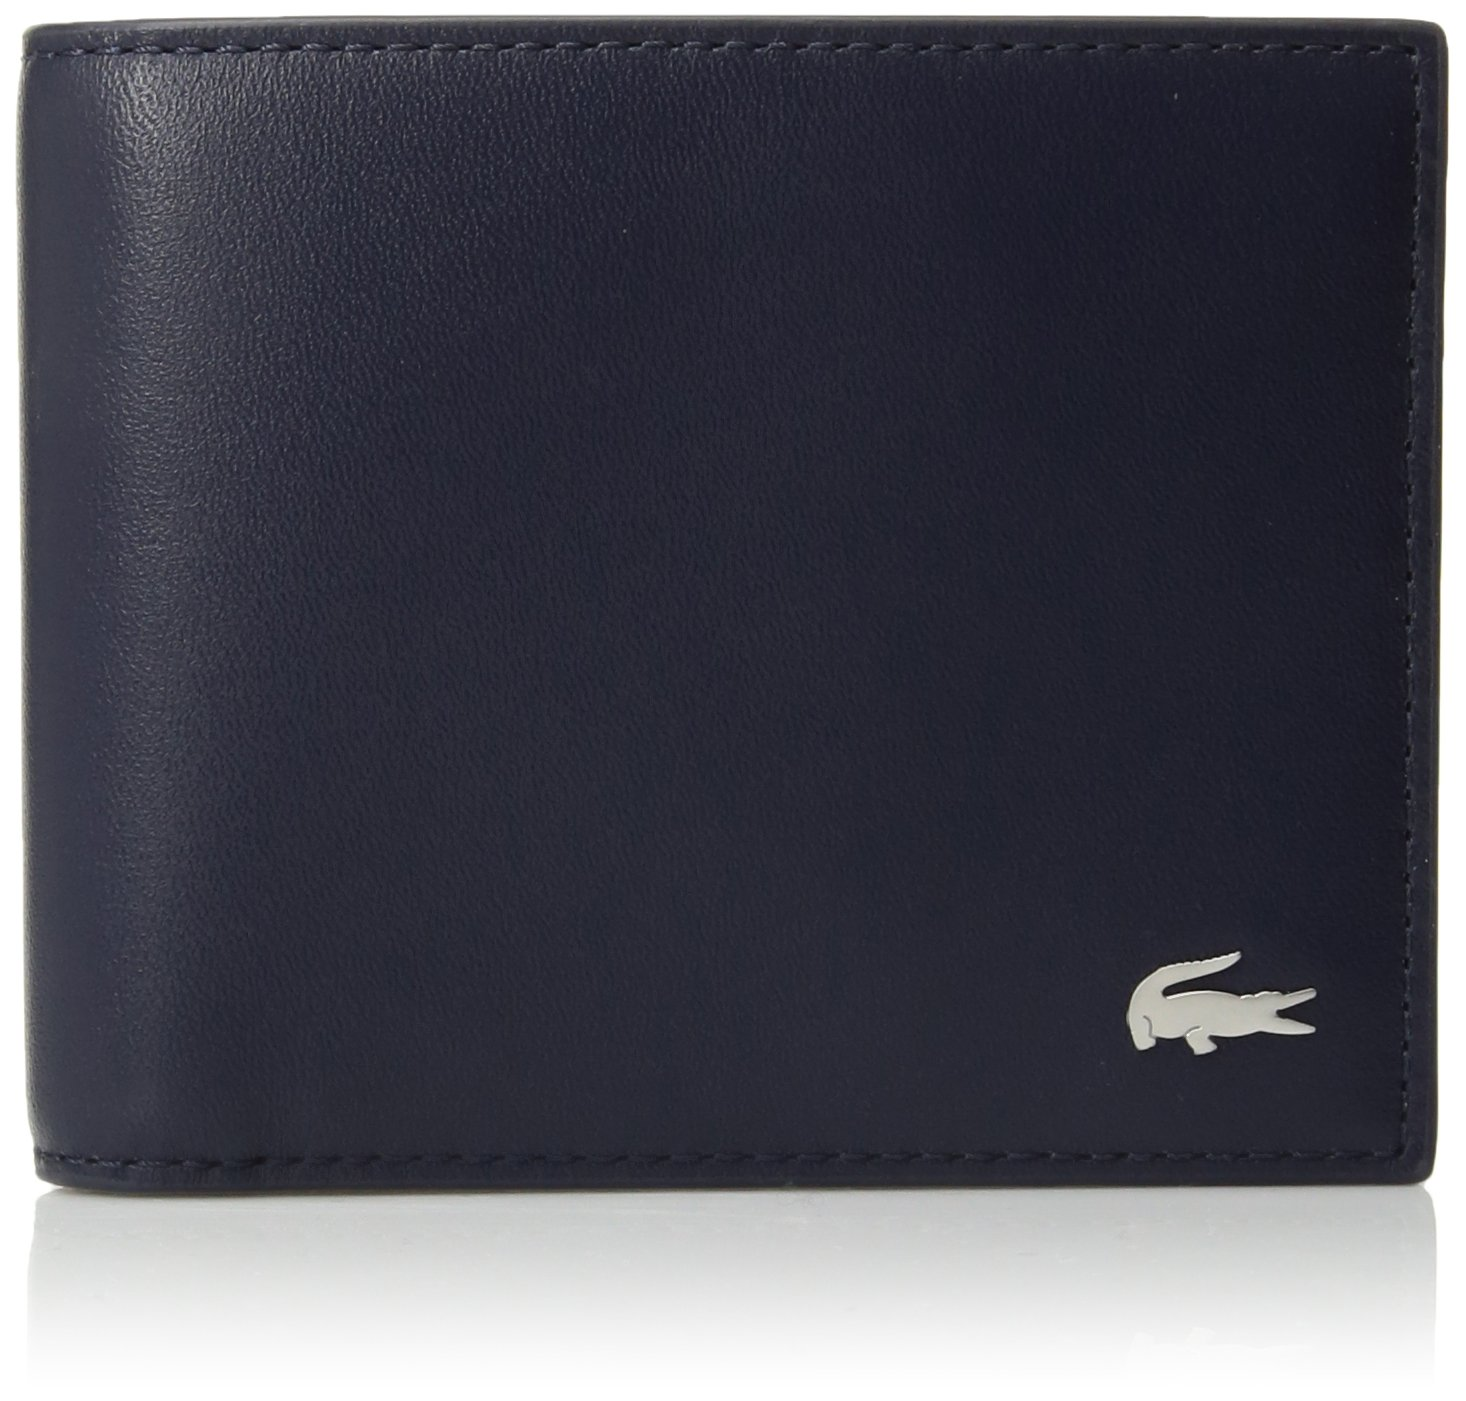 Lacoste Men's FG Small Billfold Wallet, Peacoat, One Size by Lacoste